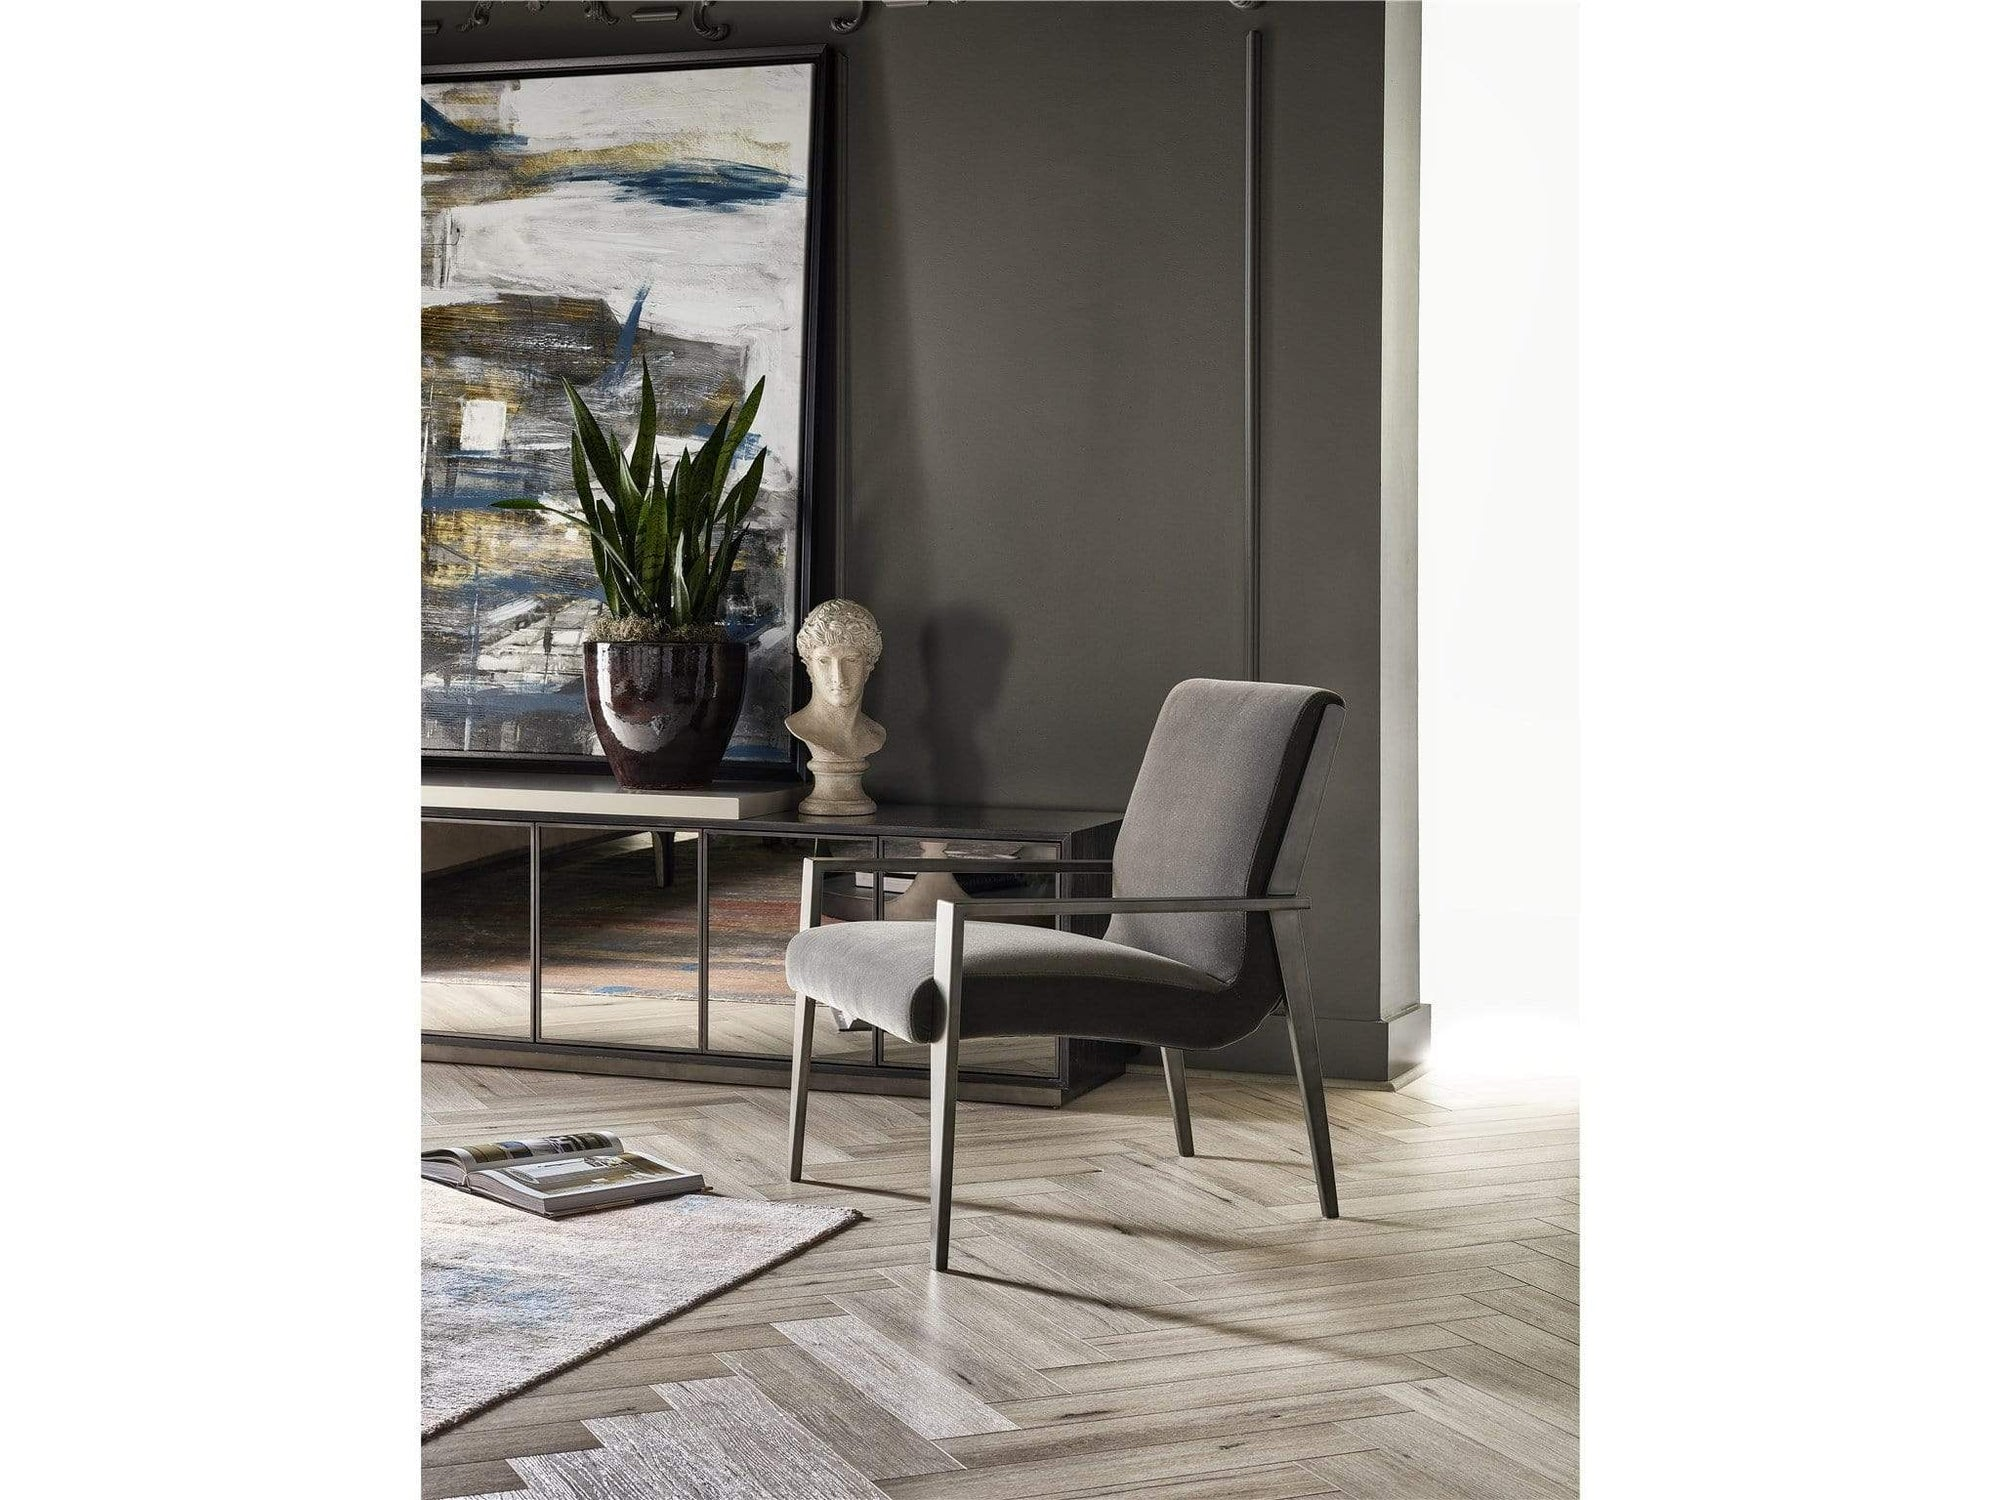 Alchemy Living Alchemy Living Urbain Florence Accent Chair - Gray 807223